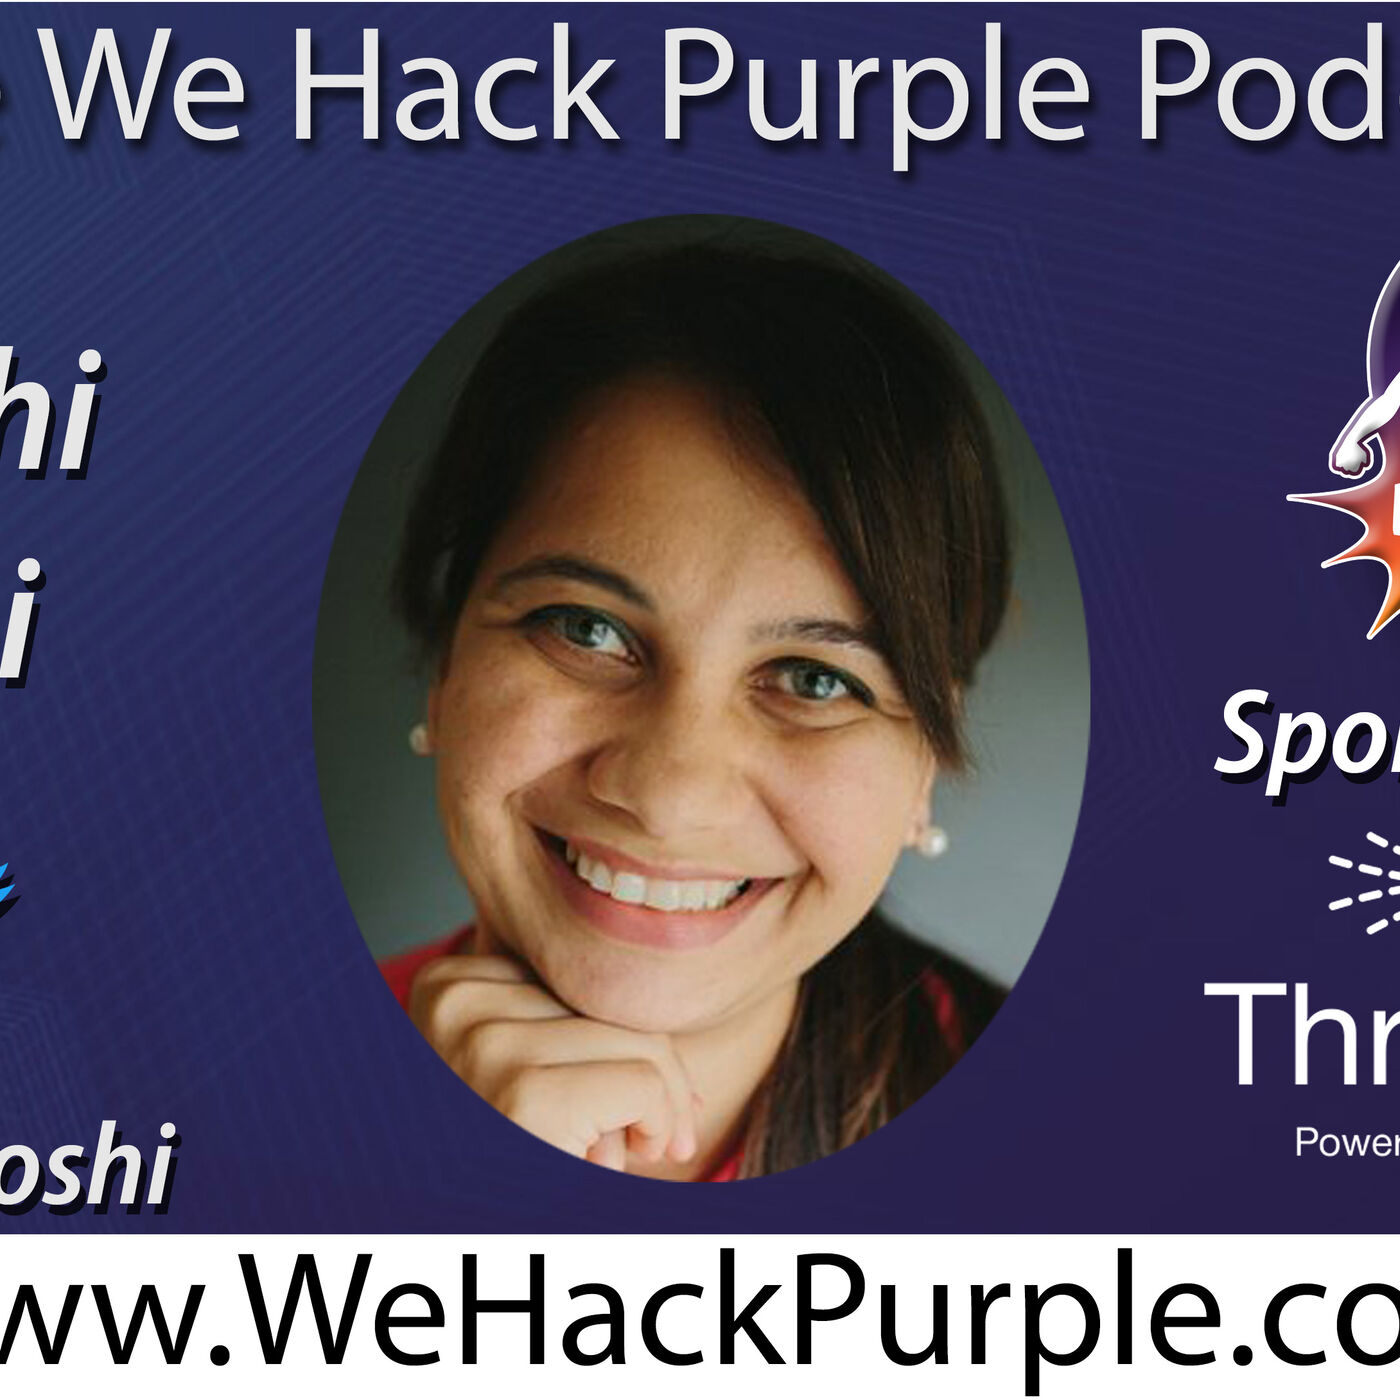 We Hack Purple podcast Episode 32 with Guest Swathi Joshi